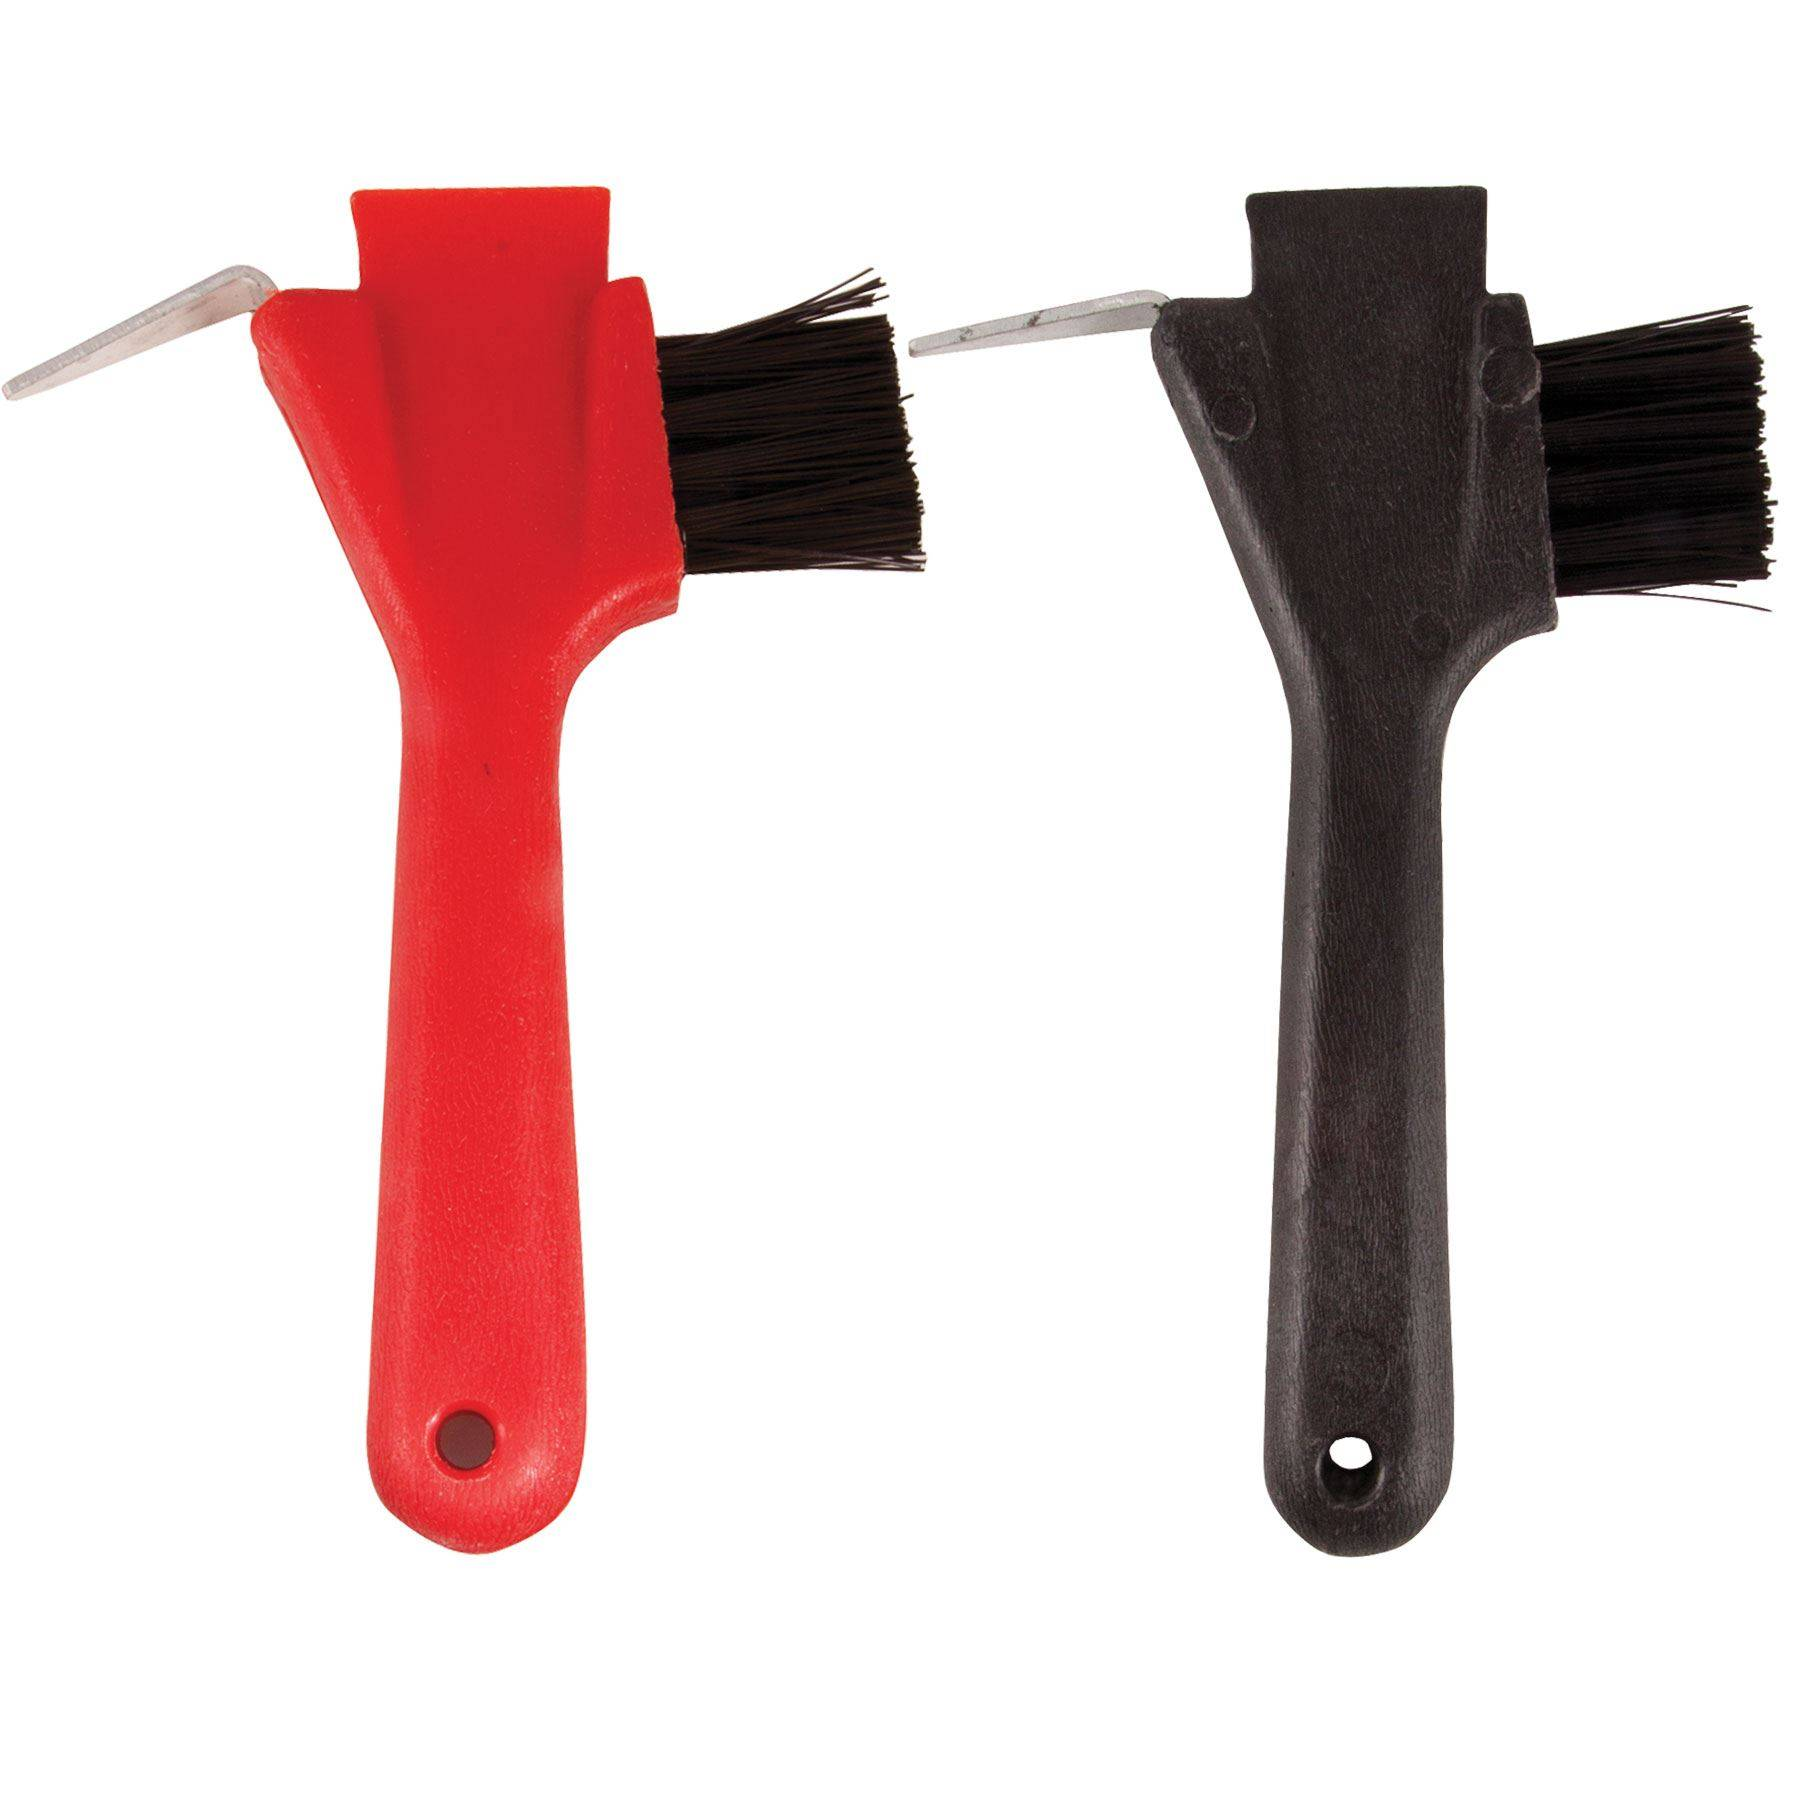 Hoof Pick Brush Combination Lot of Two Red